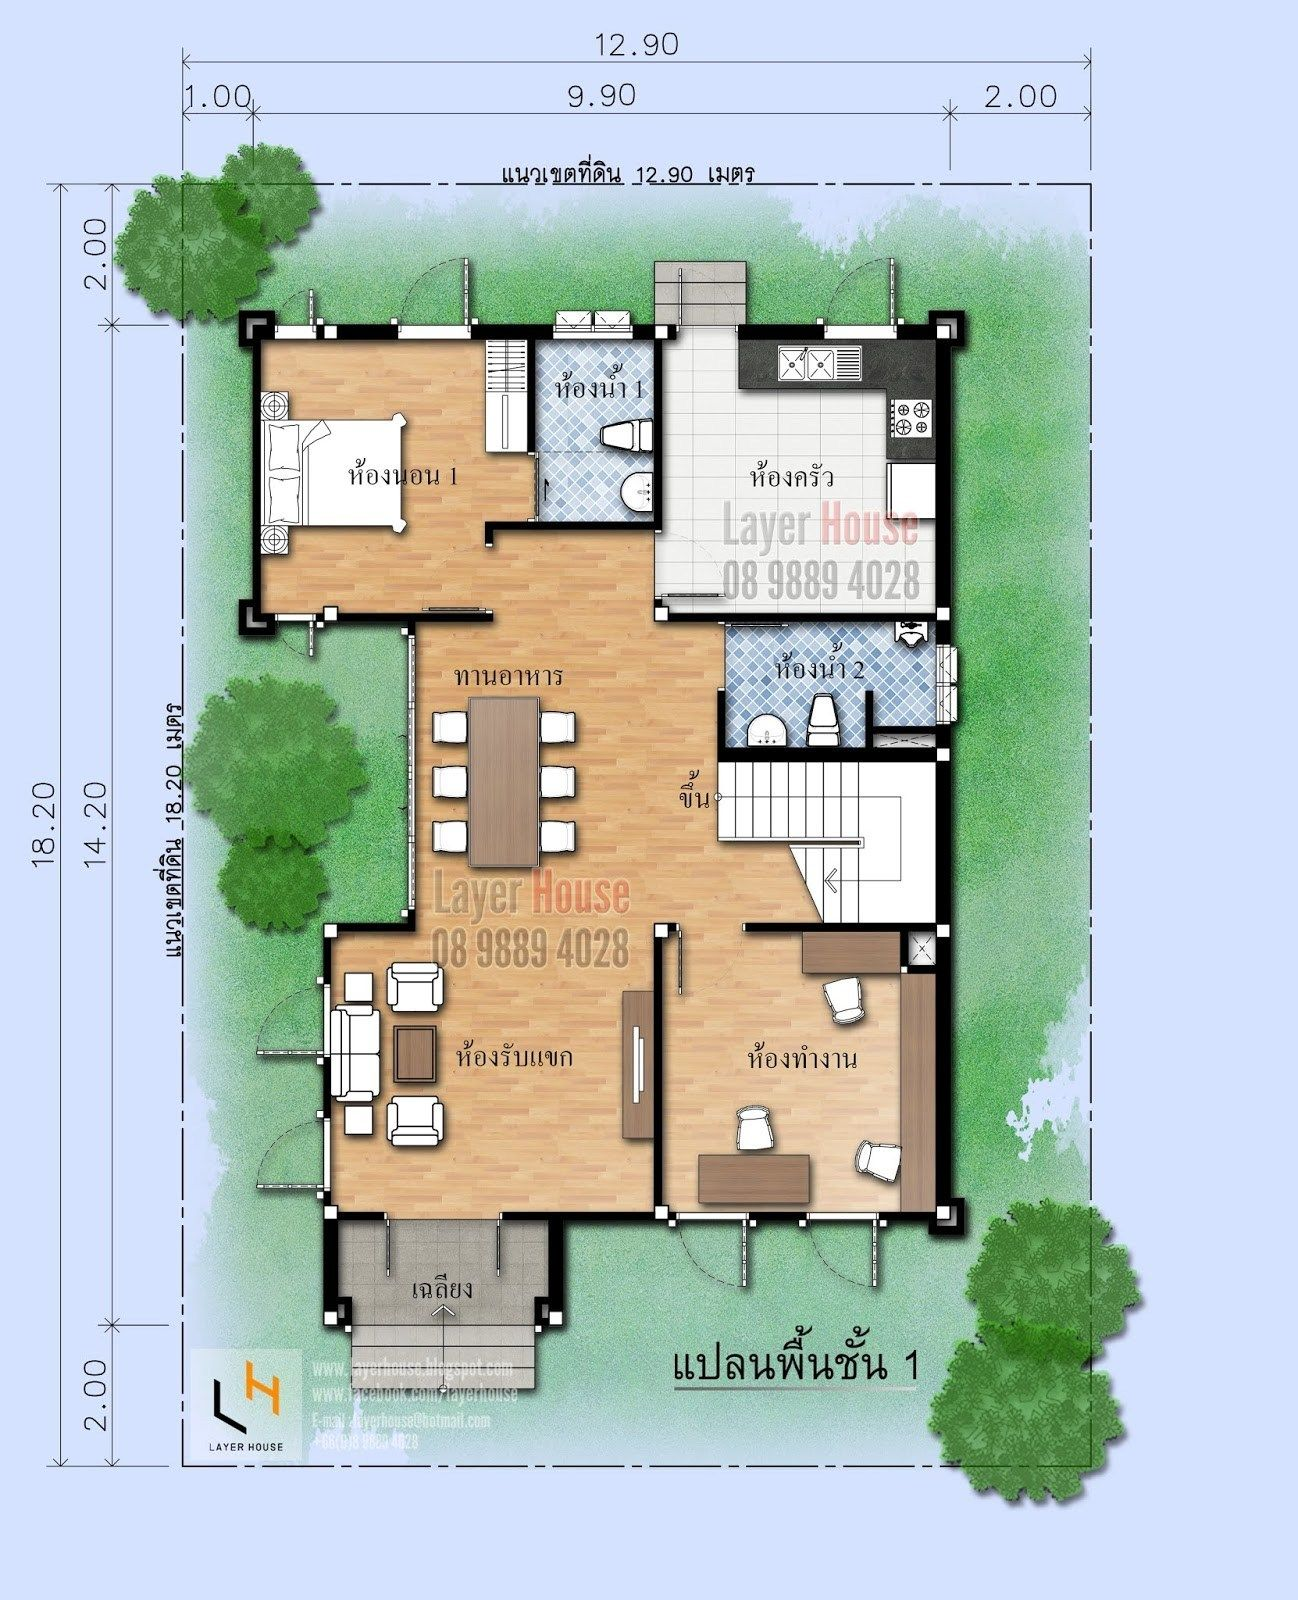 House Plans Idea 10x14 With 4 Bedrooms Sam House Plans House Plans New House Plans Home Design Plans